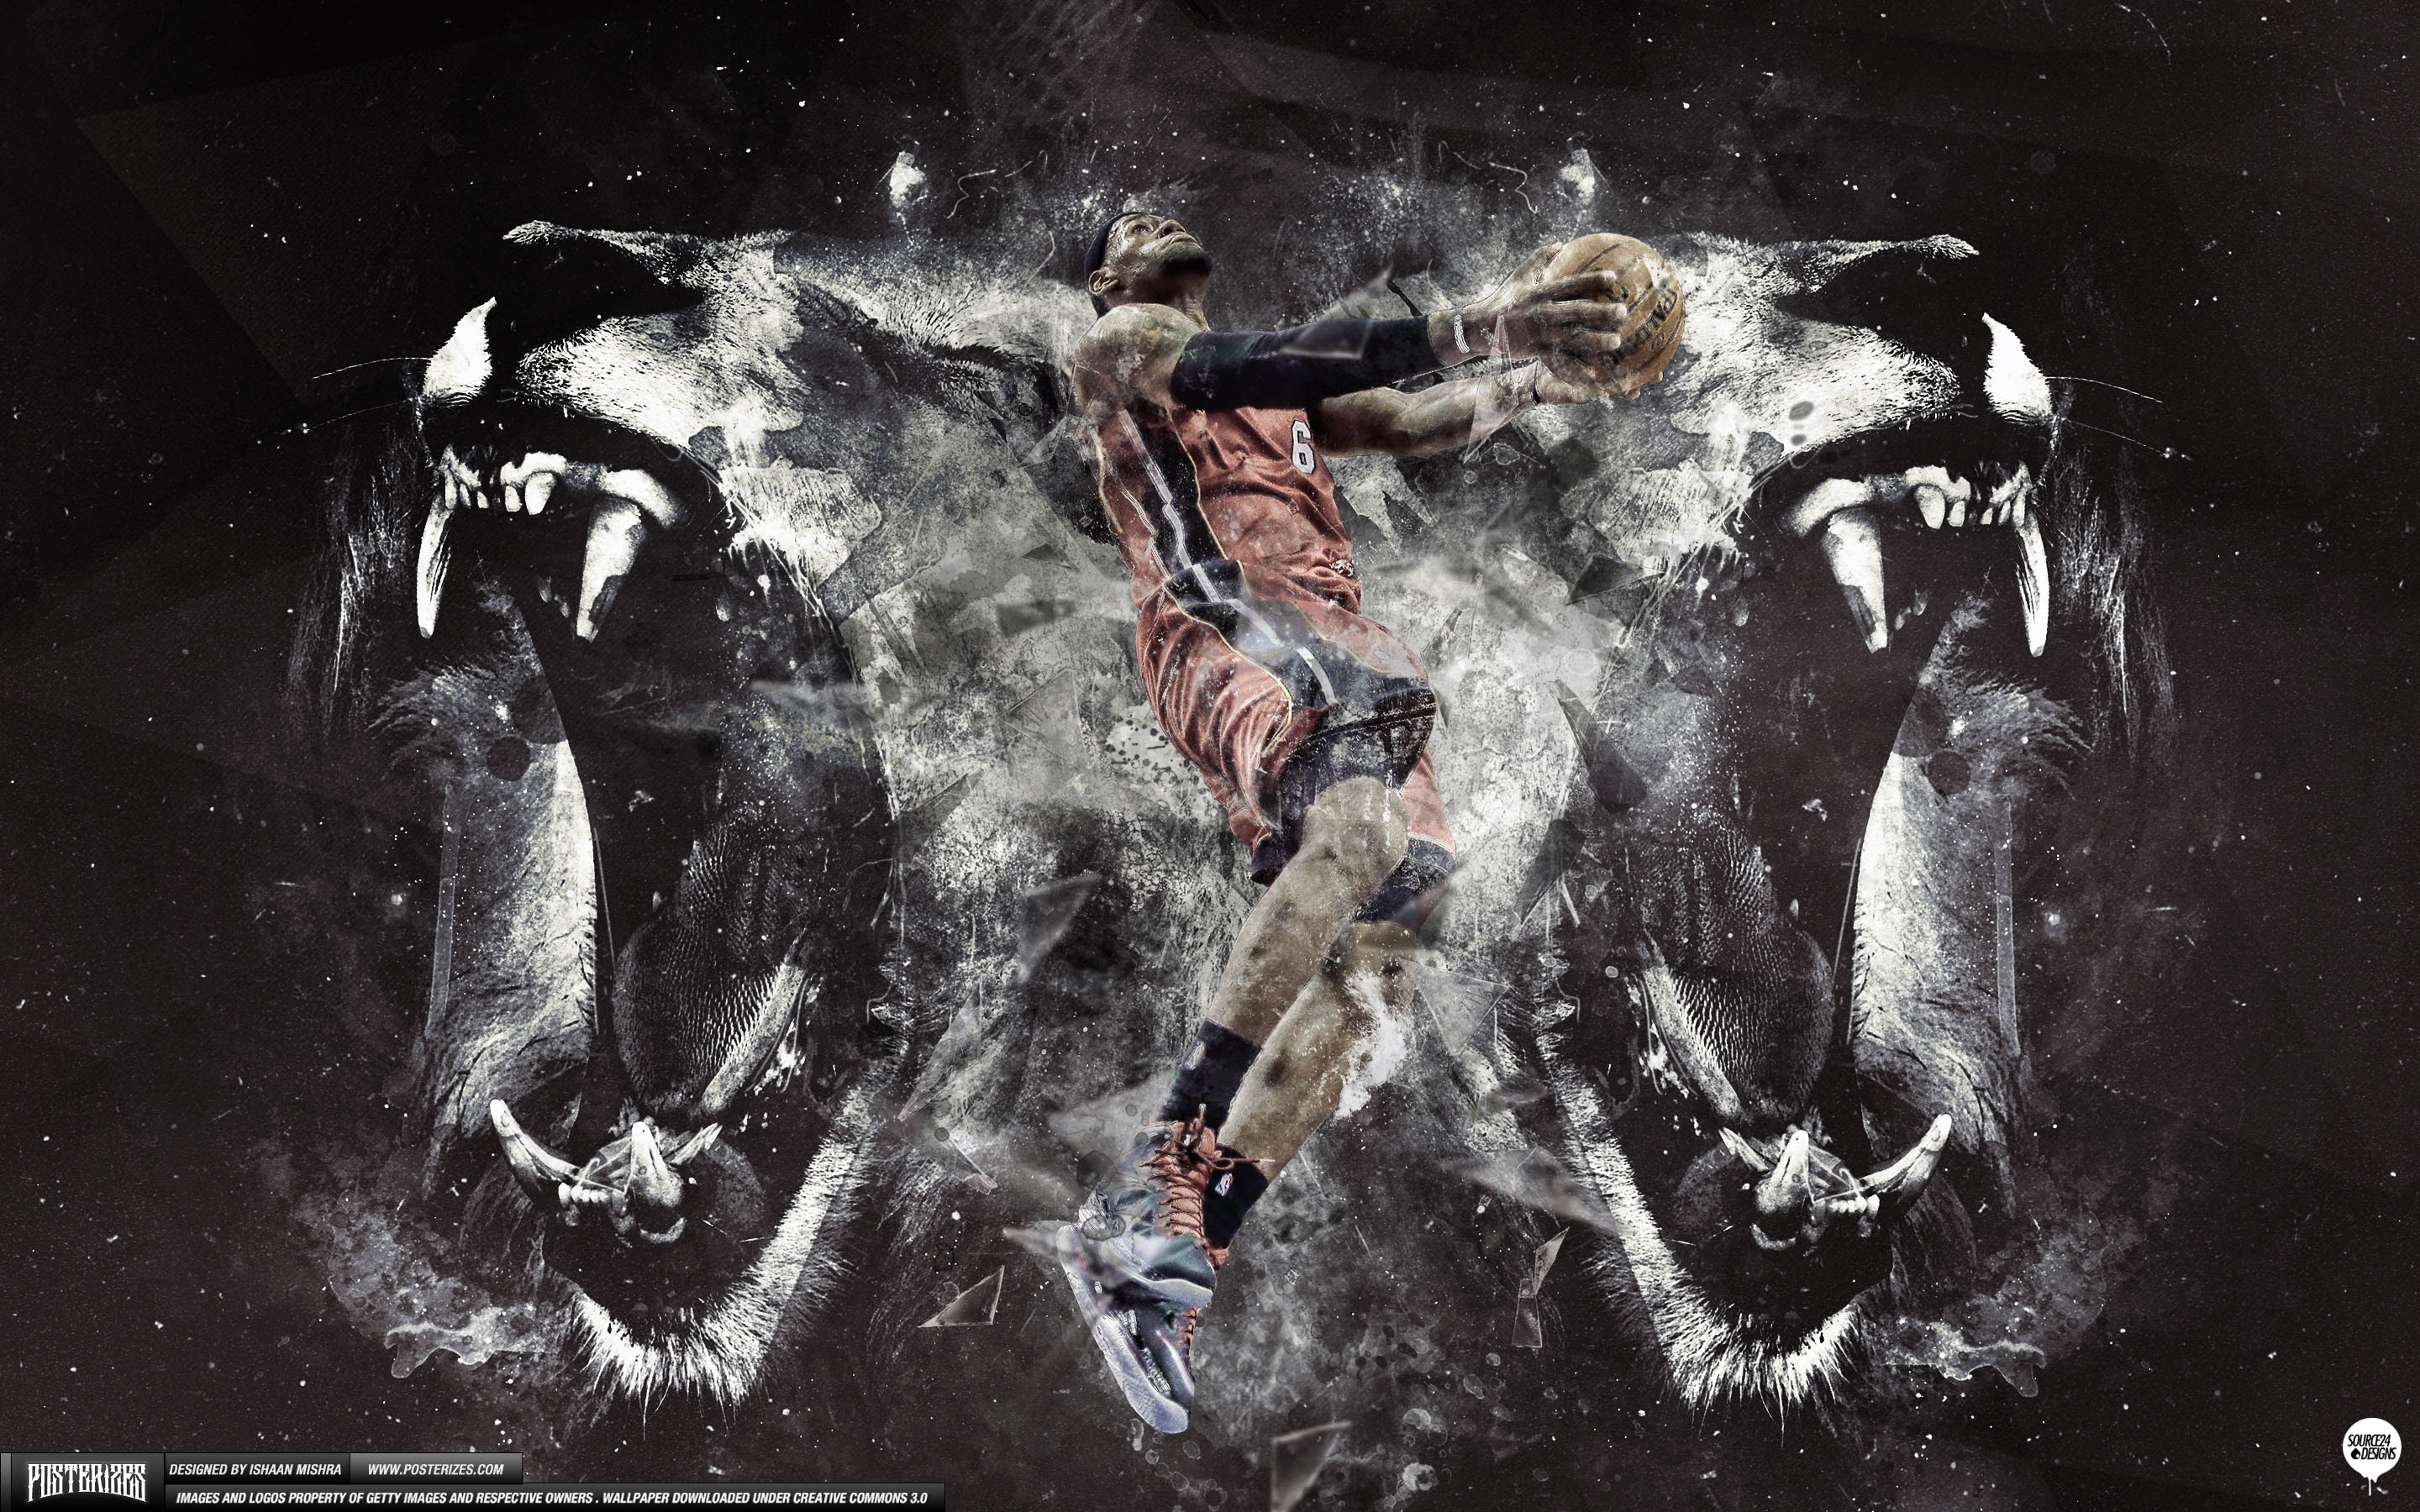 LeBron James Wallpapers High Resolution And Quality Download